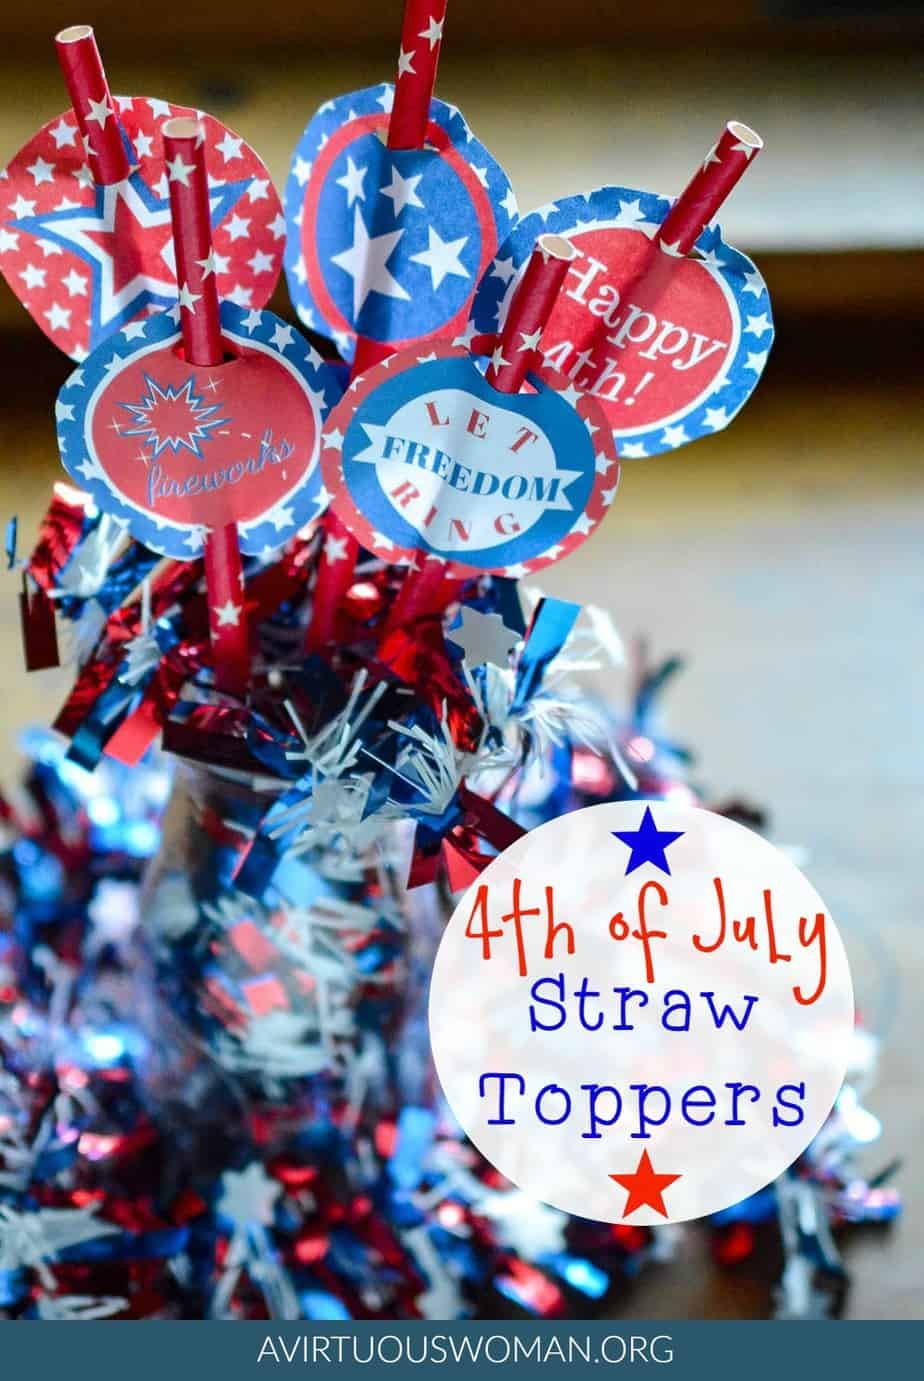 Celebrate Independence Day with these fun Free Printable 4th of July Straw Toppers @ AVirtuousWoman.org